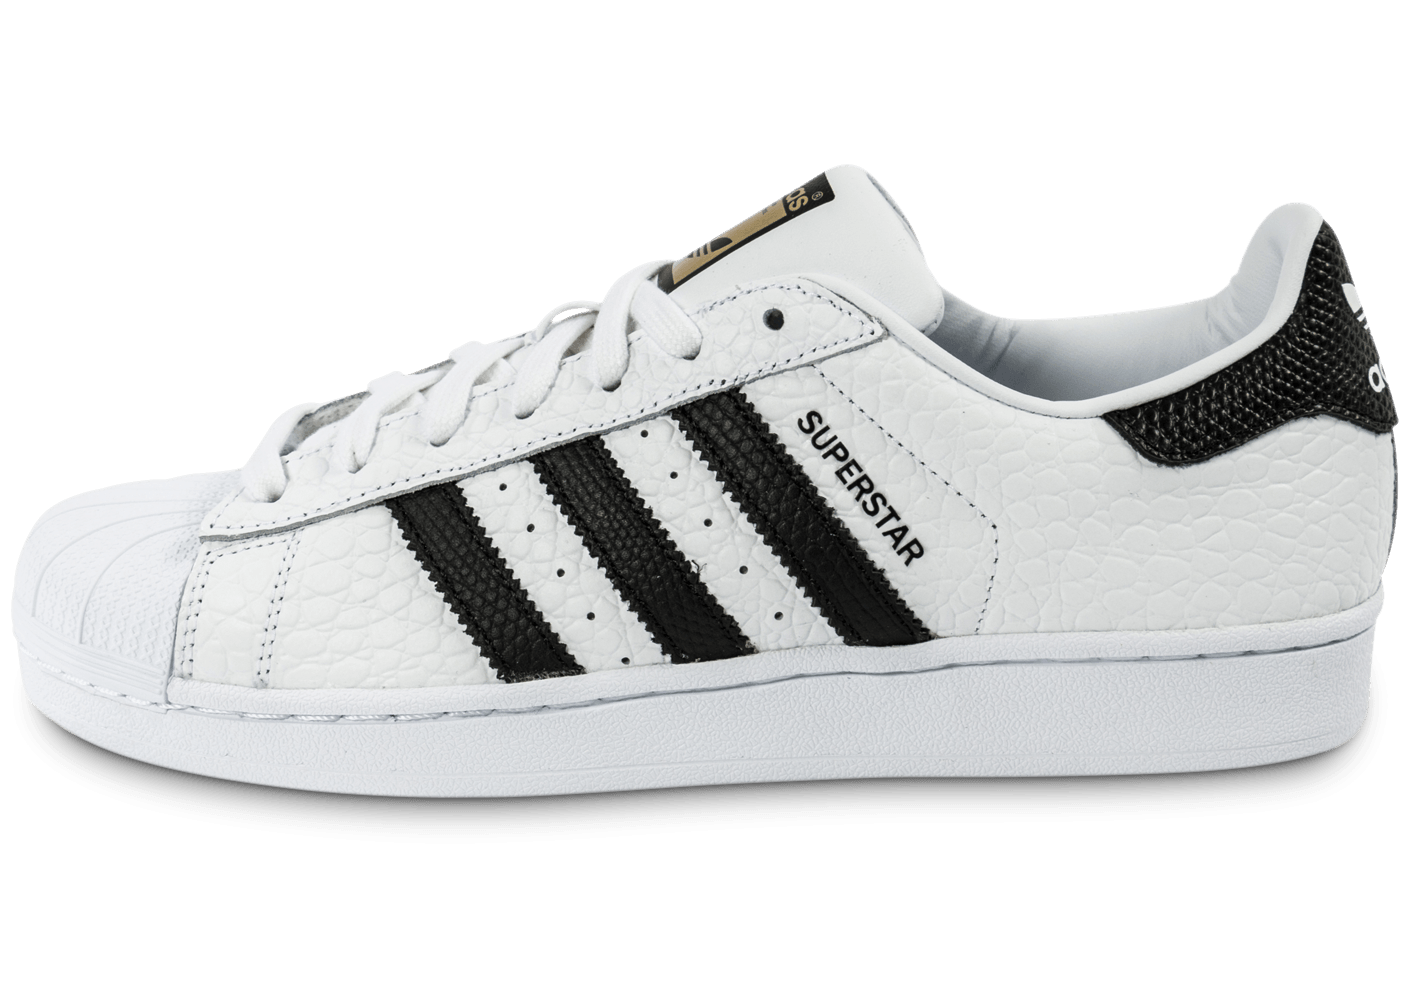 adidas Superstar Animal blanc noir - Chaussures Baskets homme - Chausport